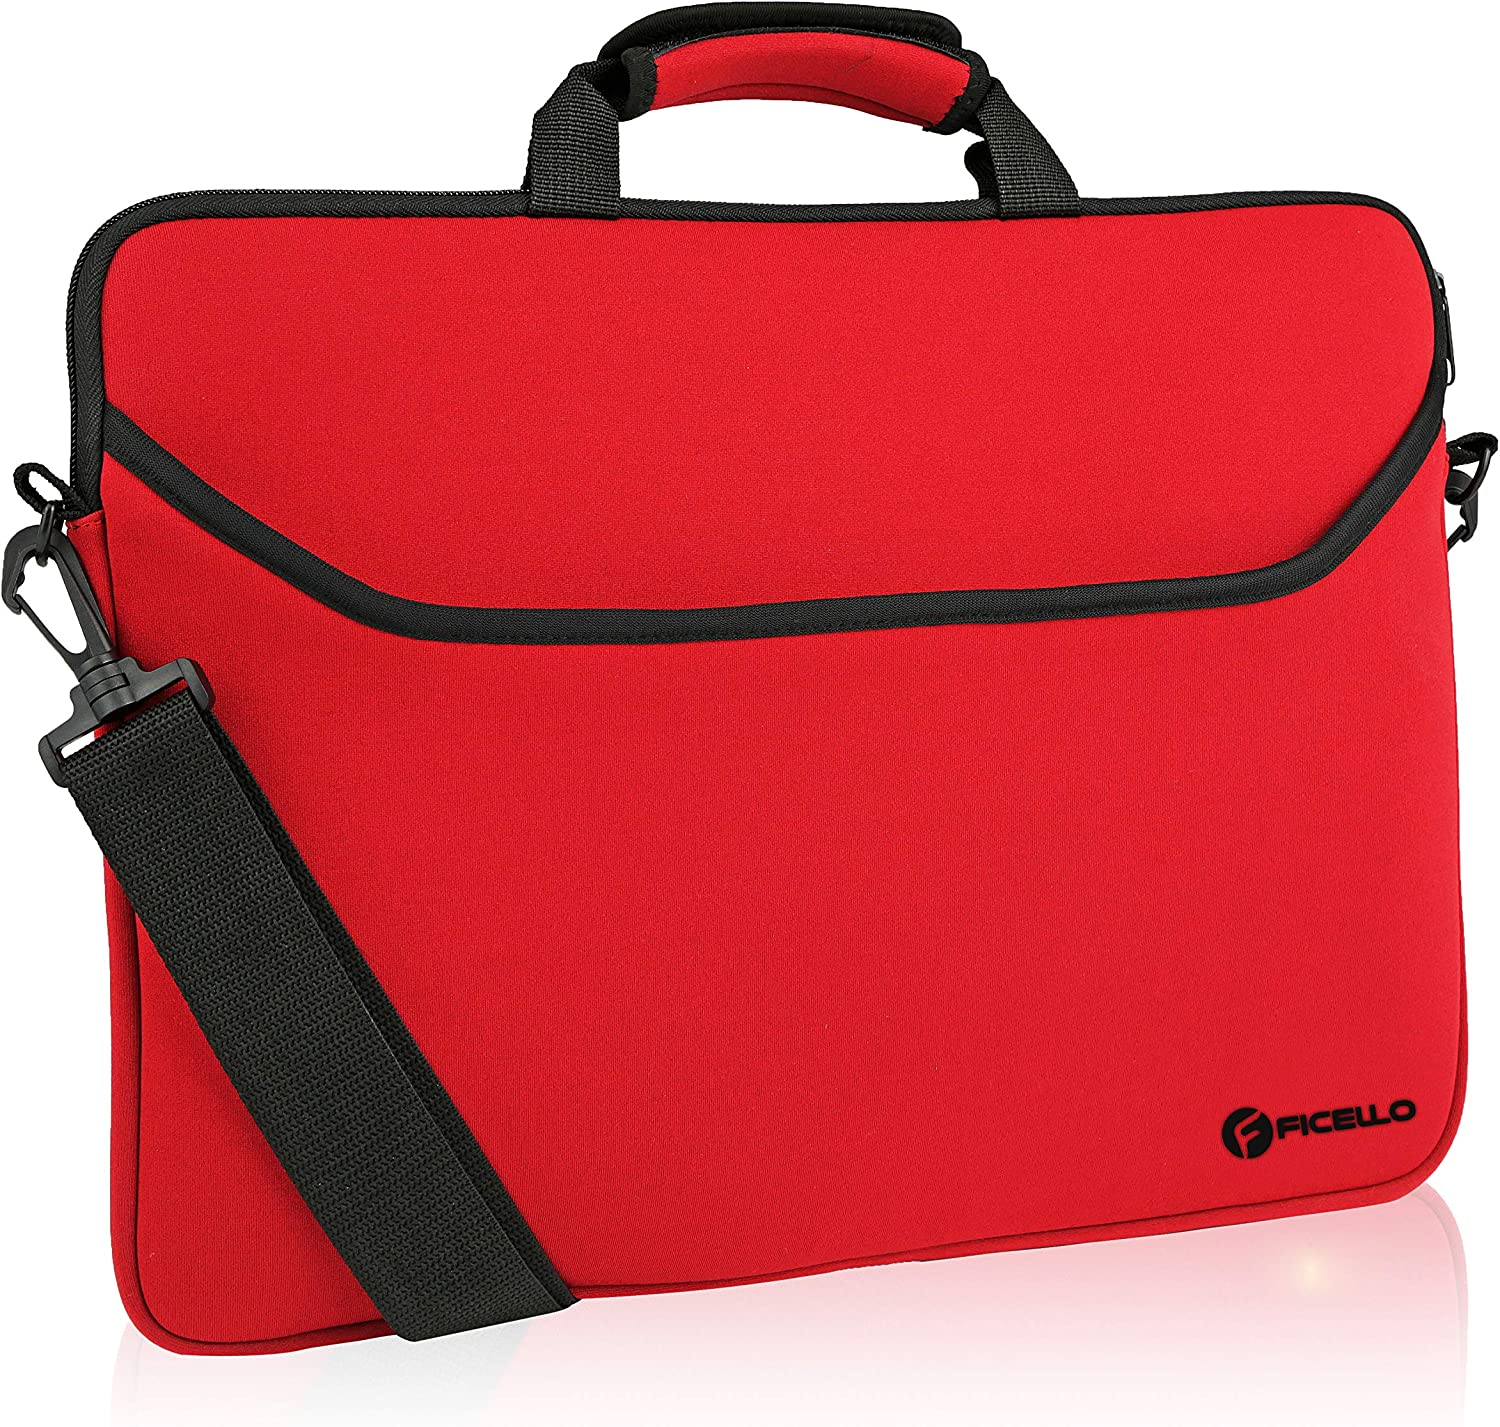 FamGo 15.6 Inch Laptop Case Laptop Carrying Bag with Shoulder Strap Water-resi